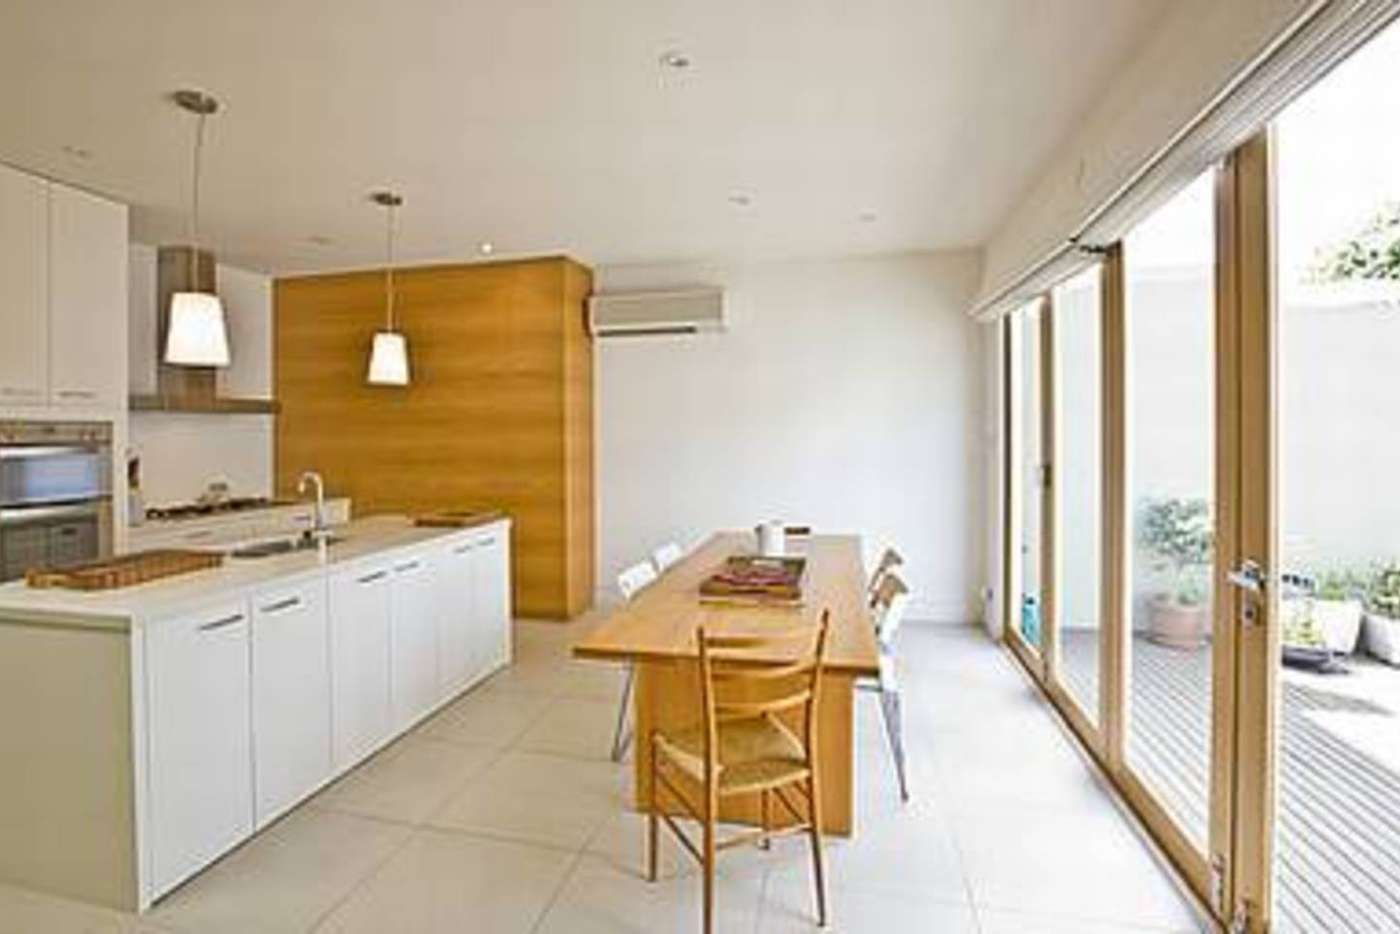 Sixth view of Homely house listing, 4 Melrose Street, North Melbourne VIC 3051